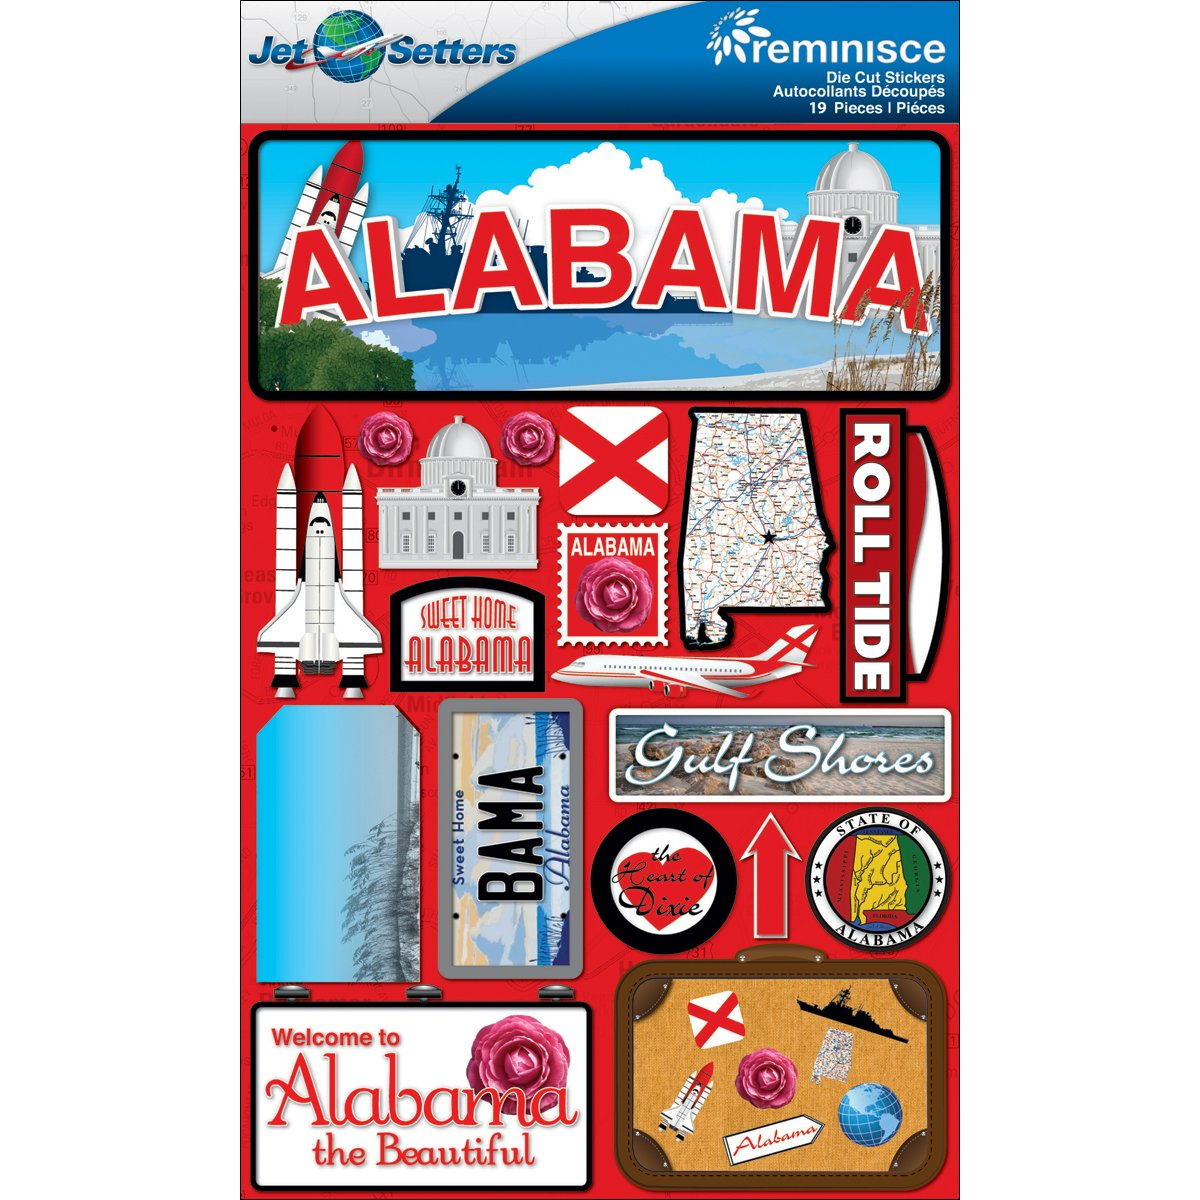 Reminisce Jet Setters Dimensional Stickers-Alabama by Reminisce B007DKNMOQ